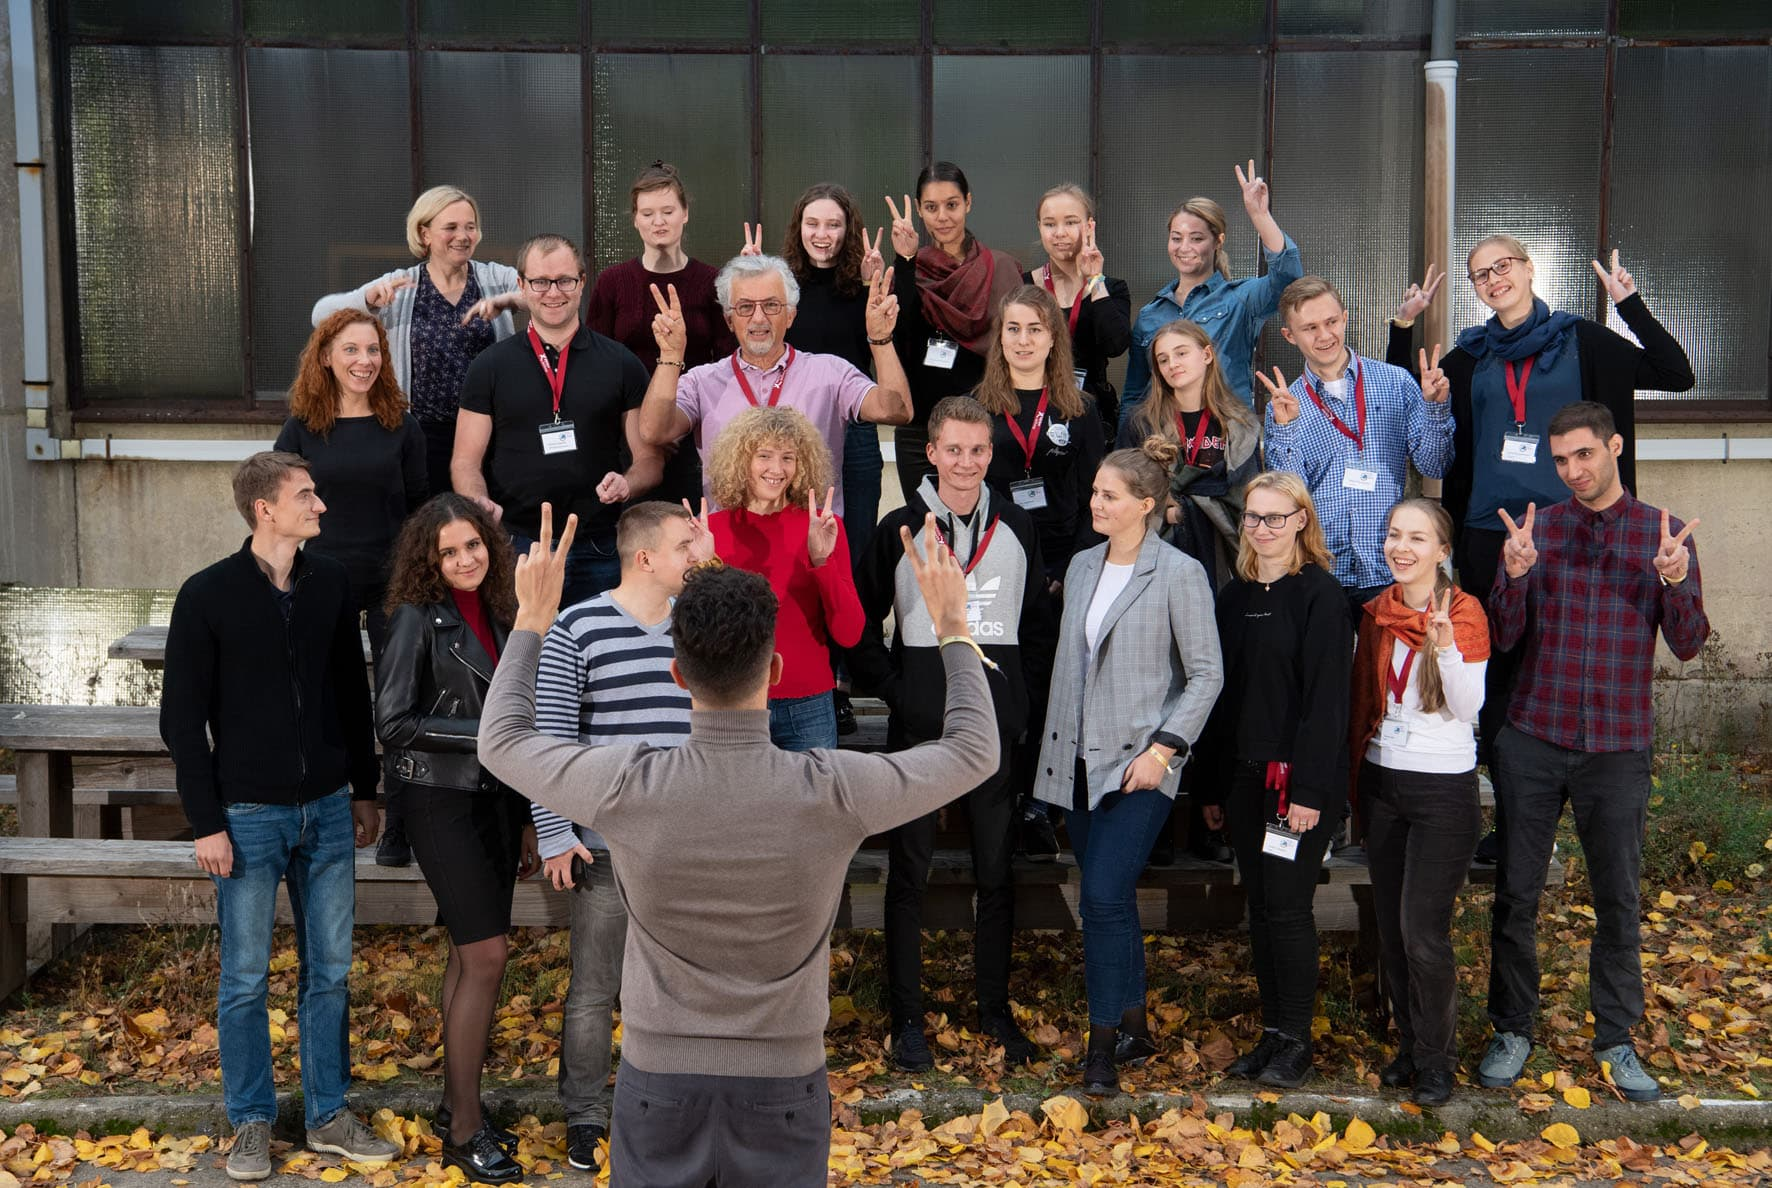 Group Image of the workshop participants